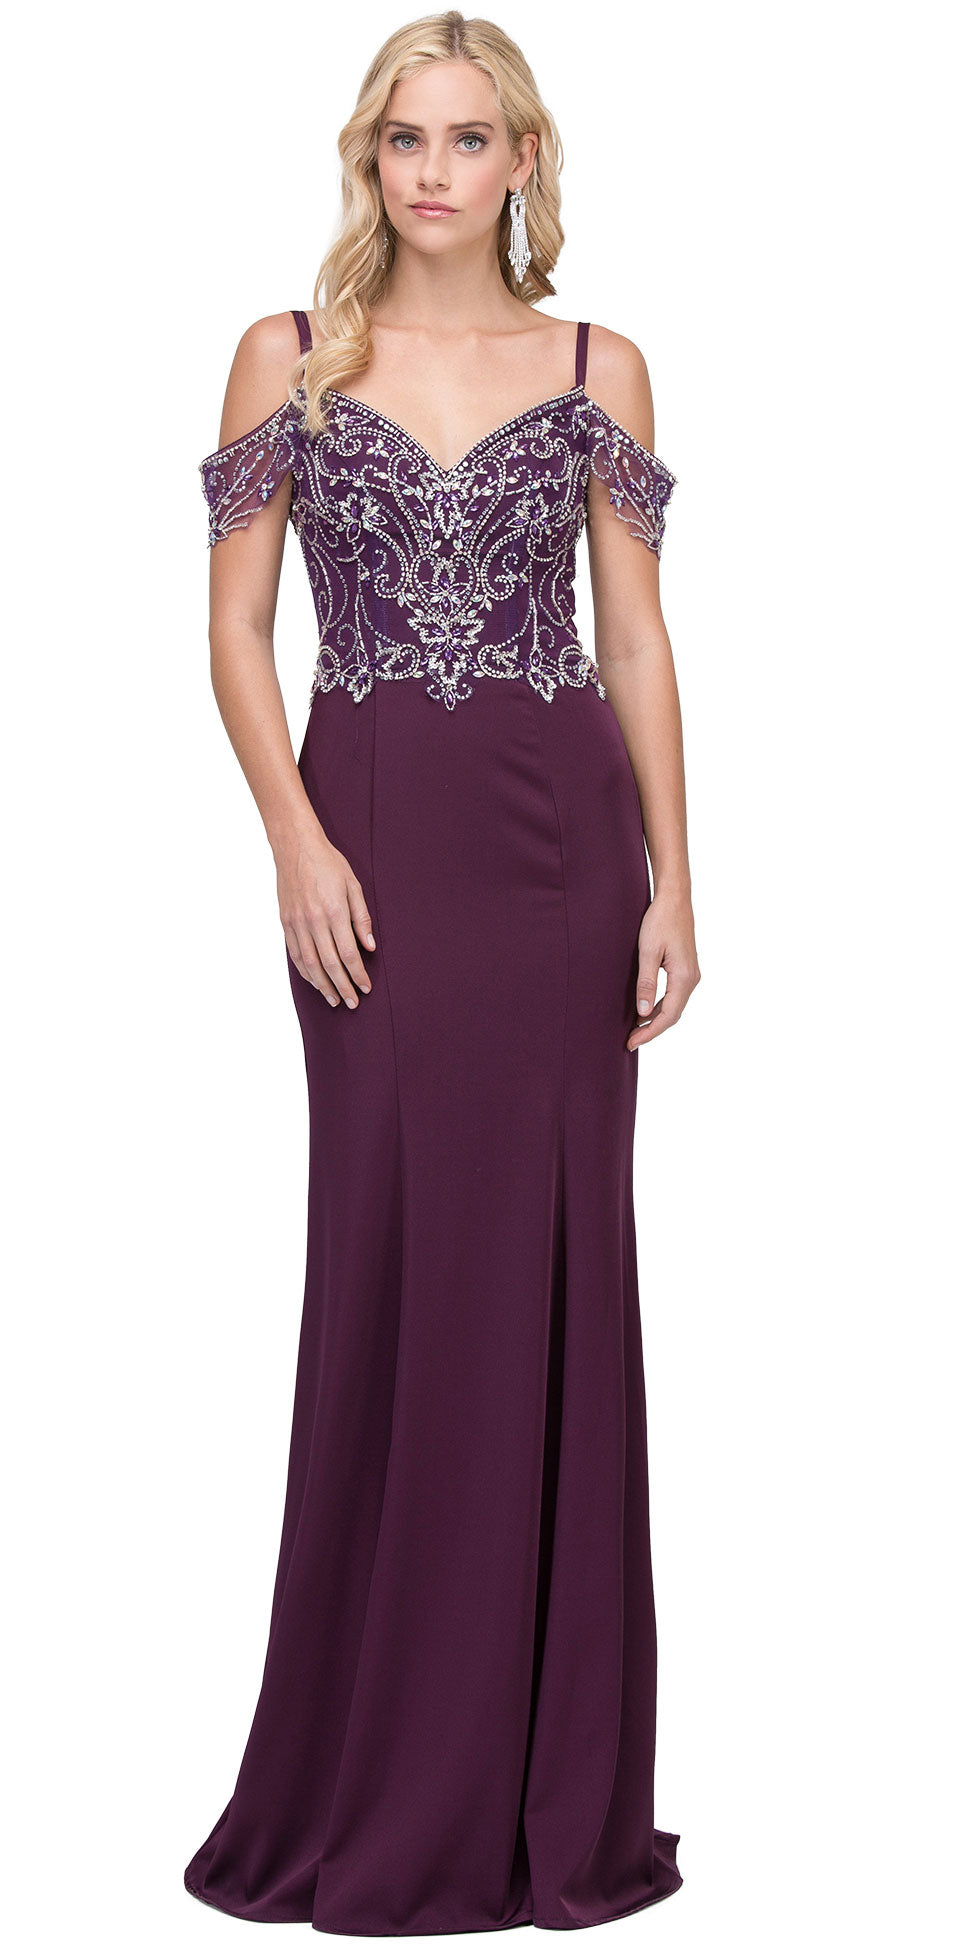 Main image of Rhinestones Bust Hanging Sleeves Long Prom Dress.